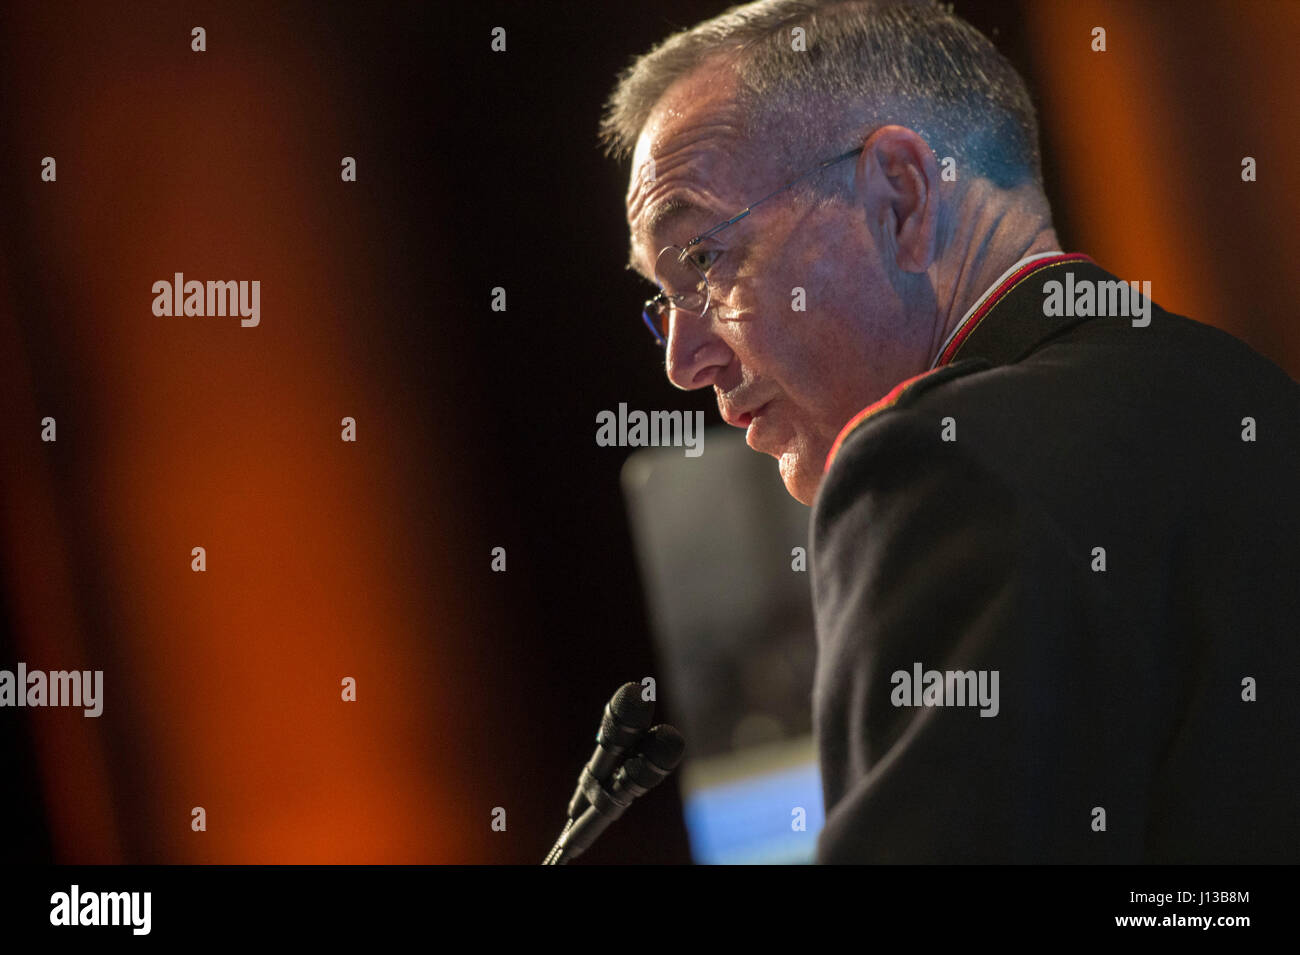 Marine Corps Gen. Joseph F. Dunford Jr., chairman of the Joint Chiefs of Staff, makes remarks during the Tragedy Stock Photo